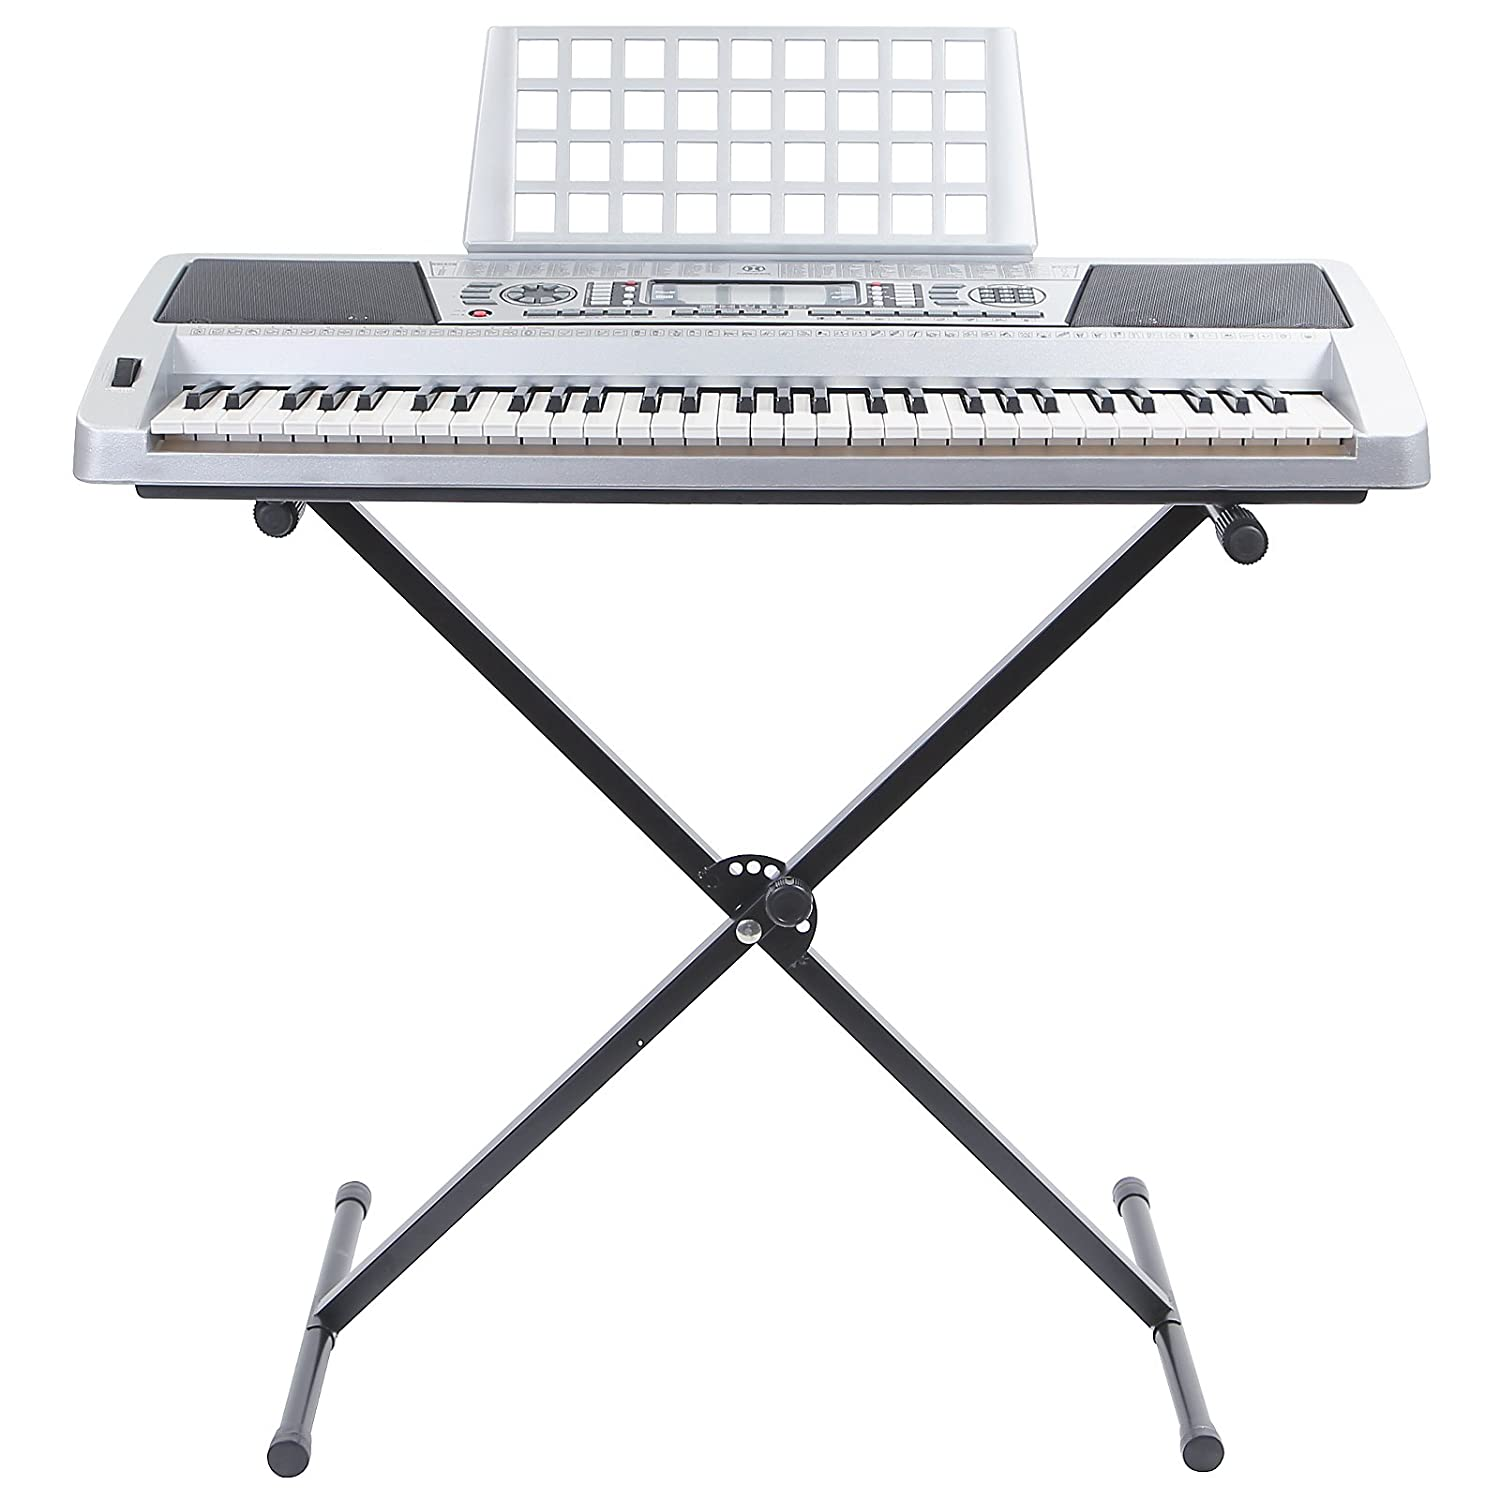 Hamzer 61-Key Digital Music Piano Keyboard - Portable Electronic Musical Instrument - MIDI Output & Touch Sensitive Keys